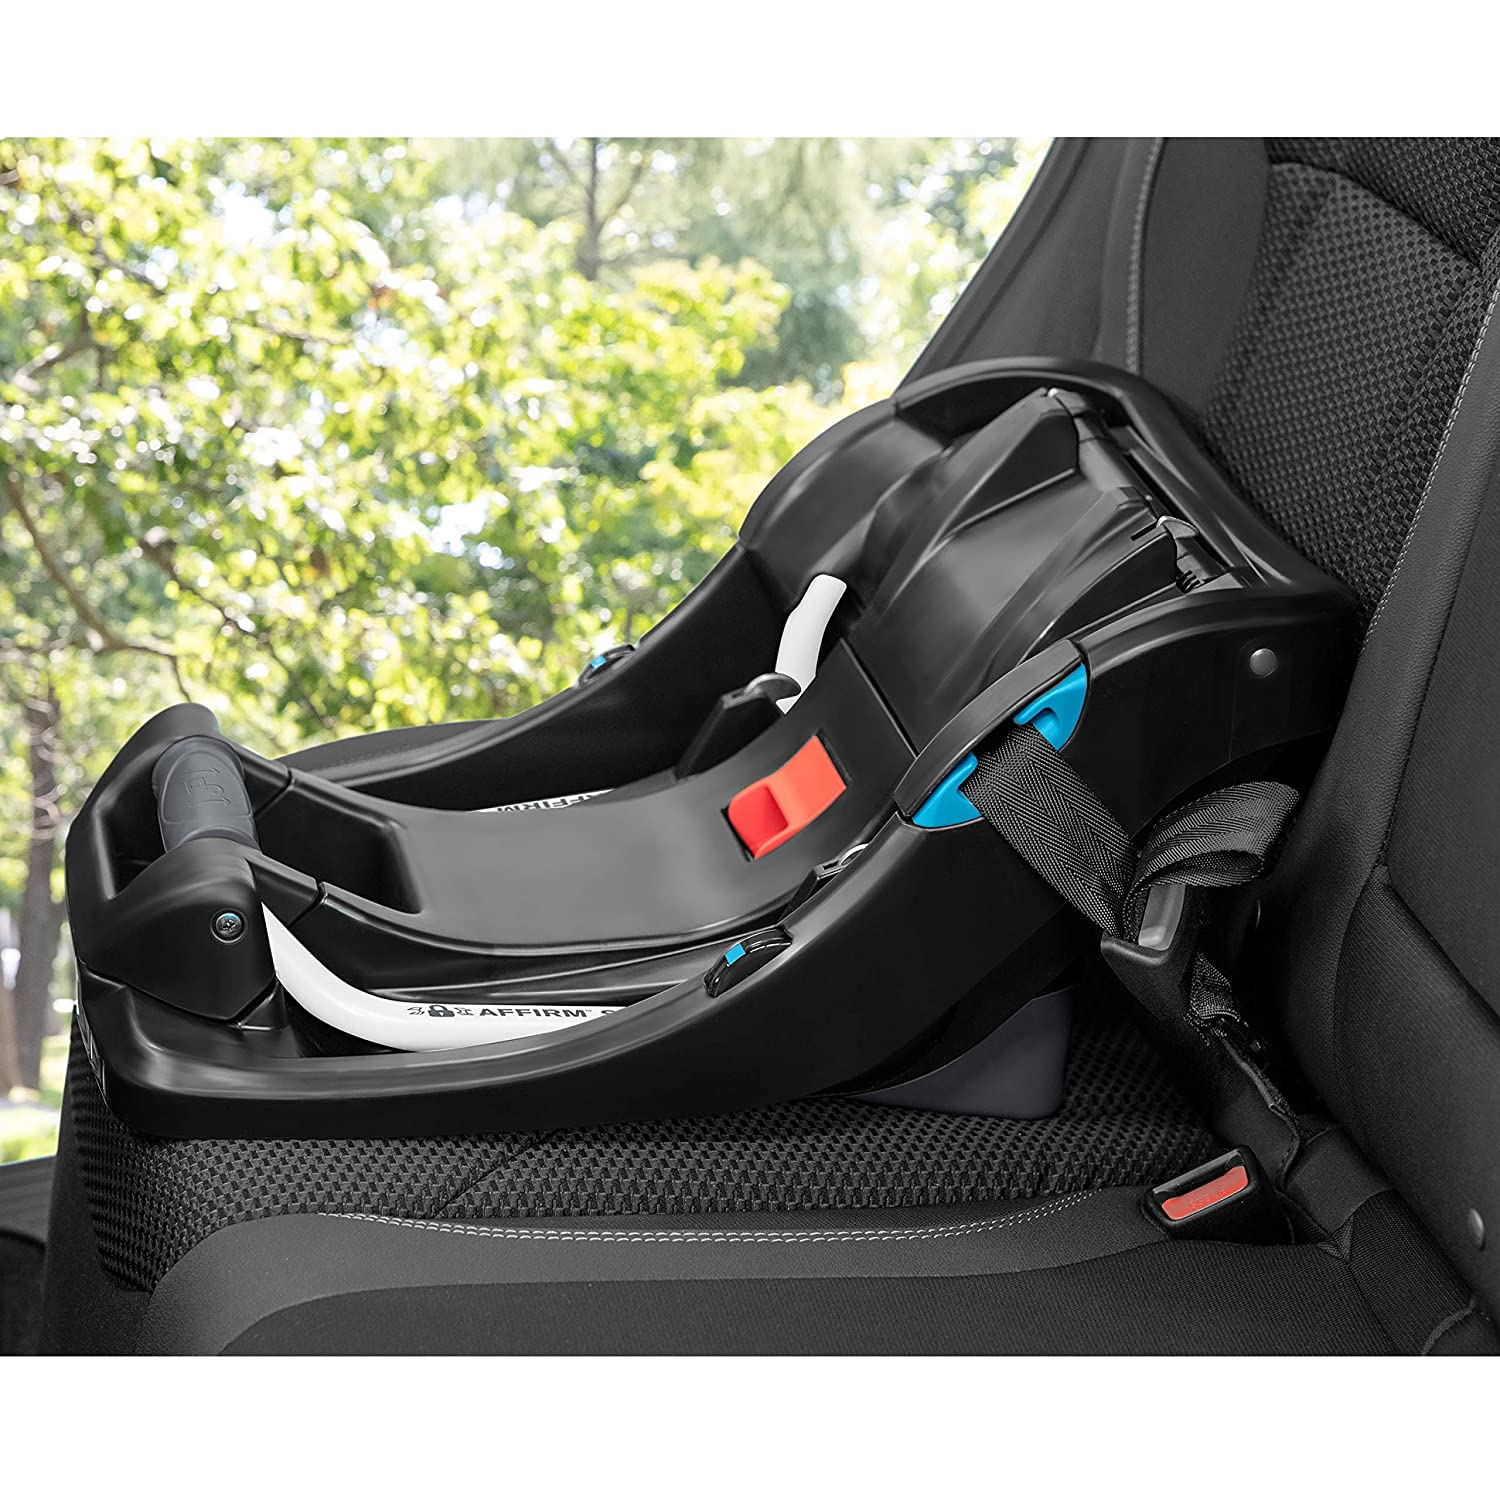 Compatible with The Summer Affirm 335 Rear-Facing Infant Car Seat Only Full SureShield and Steeloc Protection Summer Affirm Steeloc Car Seat Base